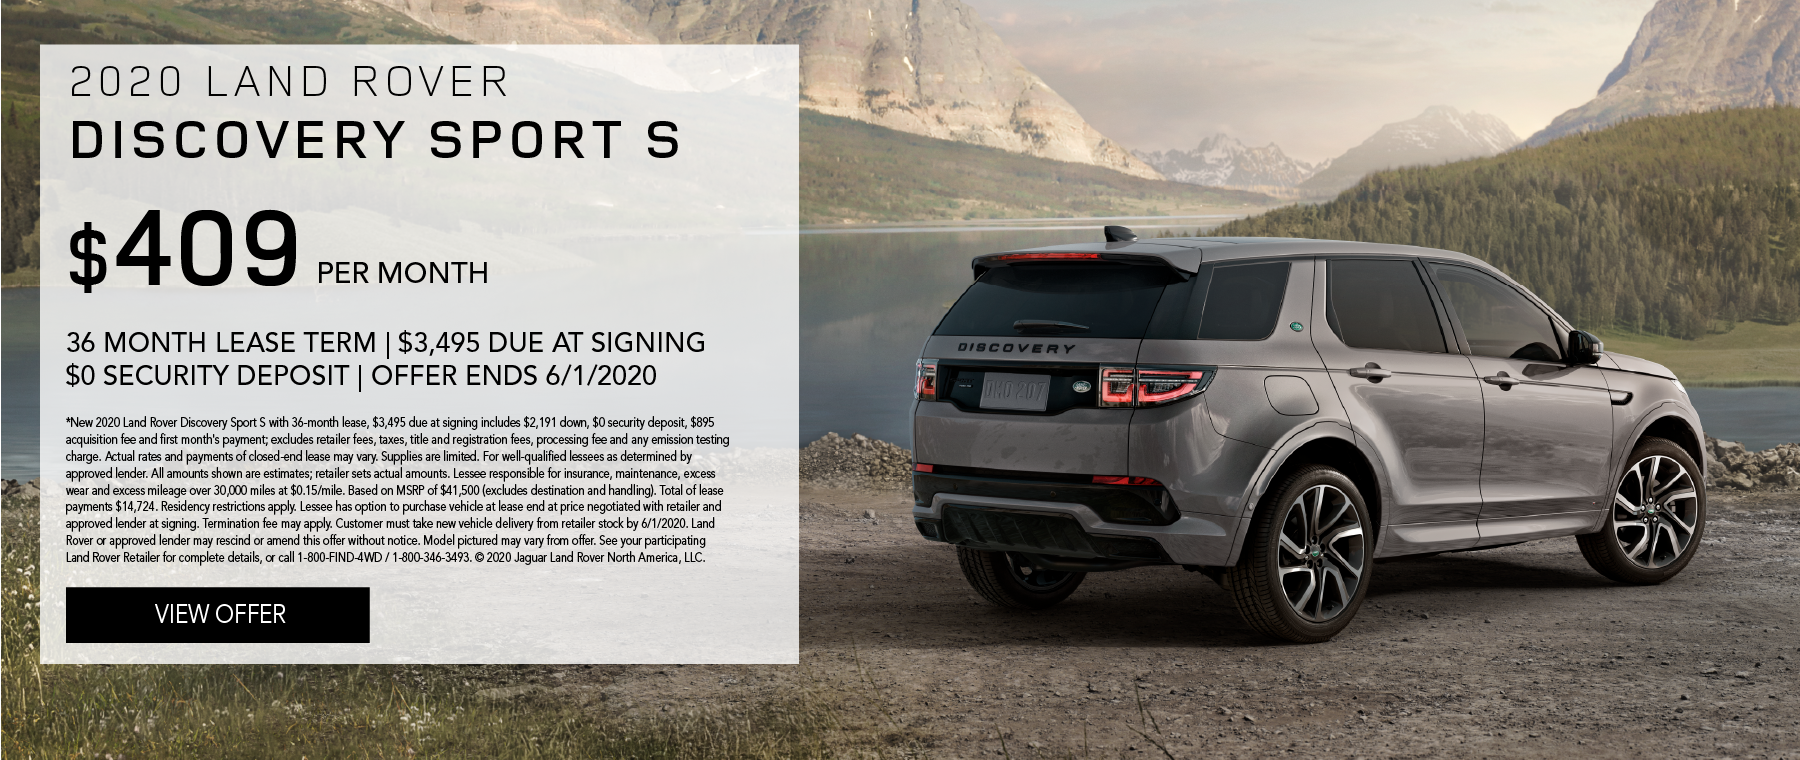 2020 LAND ROVER DISCOVERY SPORT S. $409 PER MONTH. 36 MONTH LEASE TERM. $3,495 CASH DUE AT SIGNING.. $0 SECURITY DEPOSIT. 10,000 MILES PER YEAR. EXCLUDES RETAILER FEES, TAXES, TITLE AND REGISTRATION FEES, PROCESSING FEE AND ANY EMISSION TESTING CHARGE. OFFER ENDS 6/1/2020.